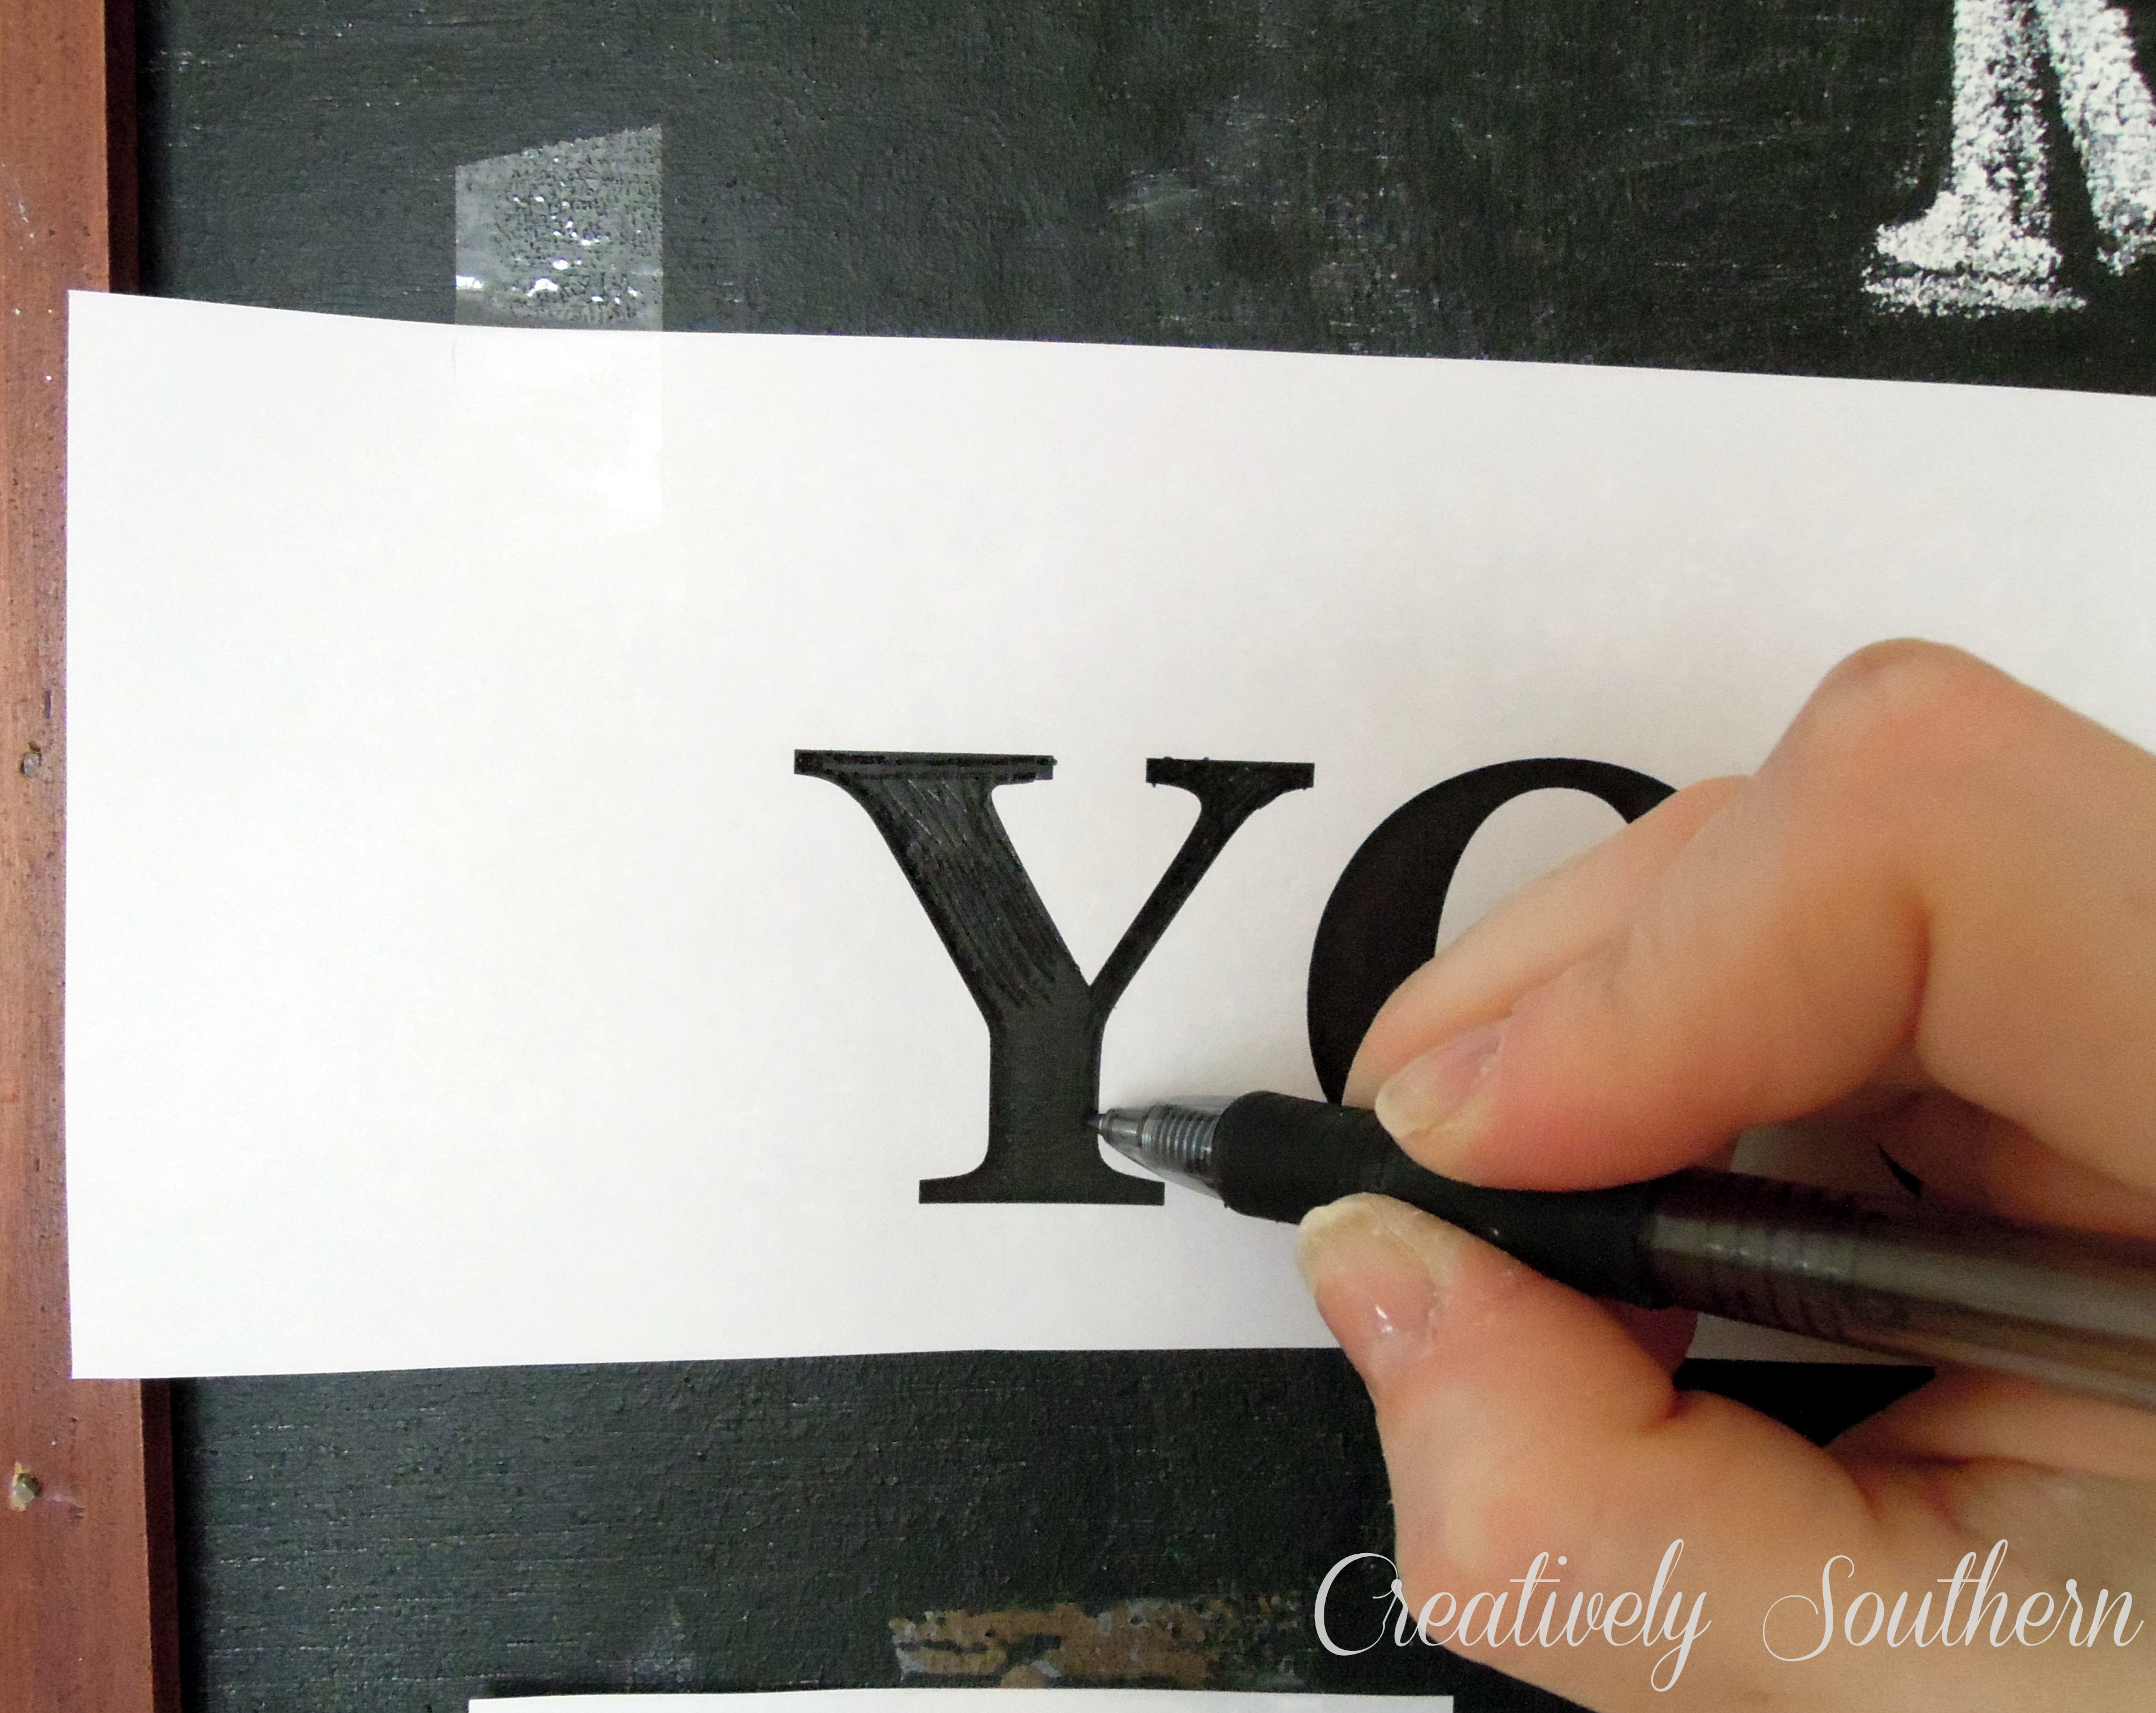 photograph relating to Printable Chalkboard Letters known as 14 Chalkboard Font Stencils Illustrations or photos - Create Your Private